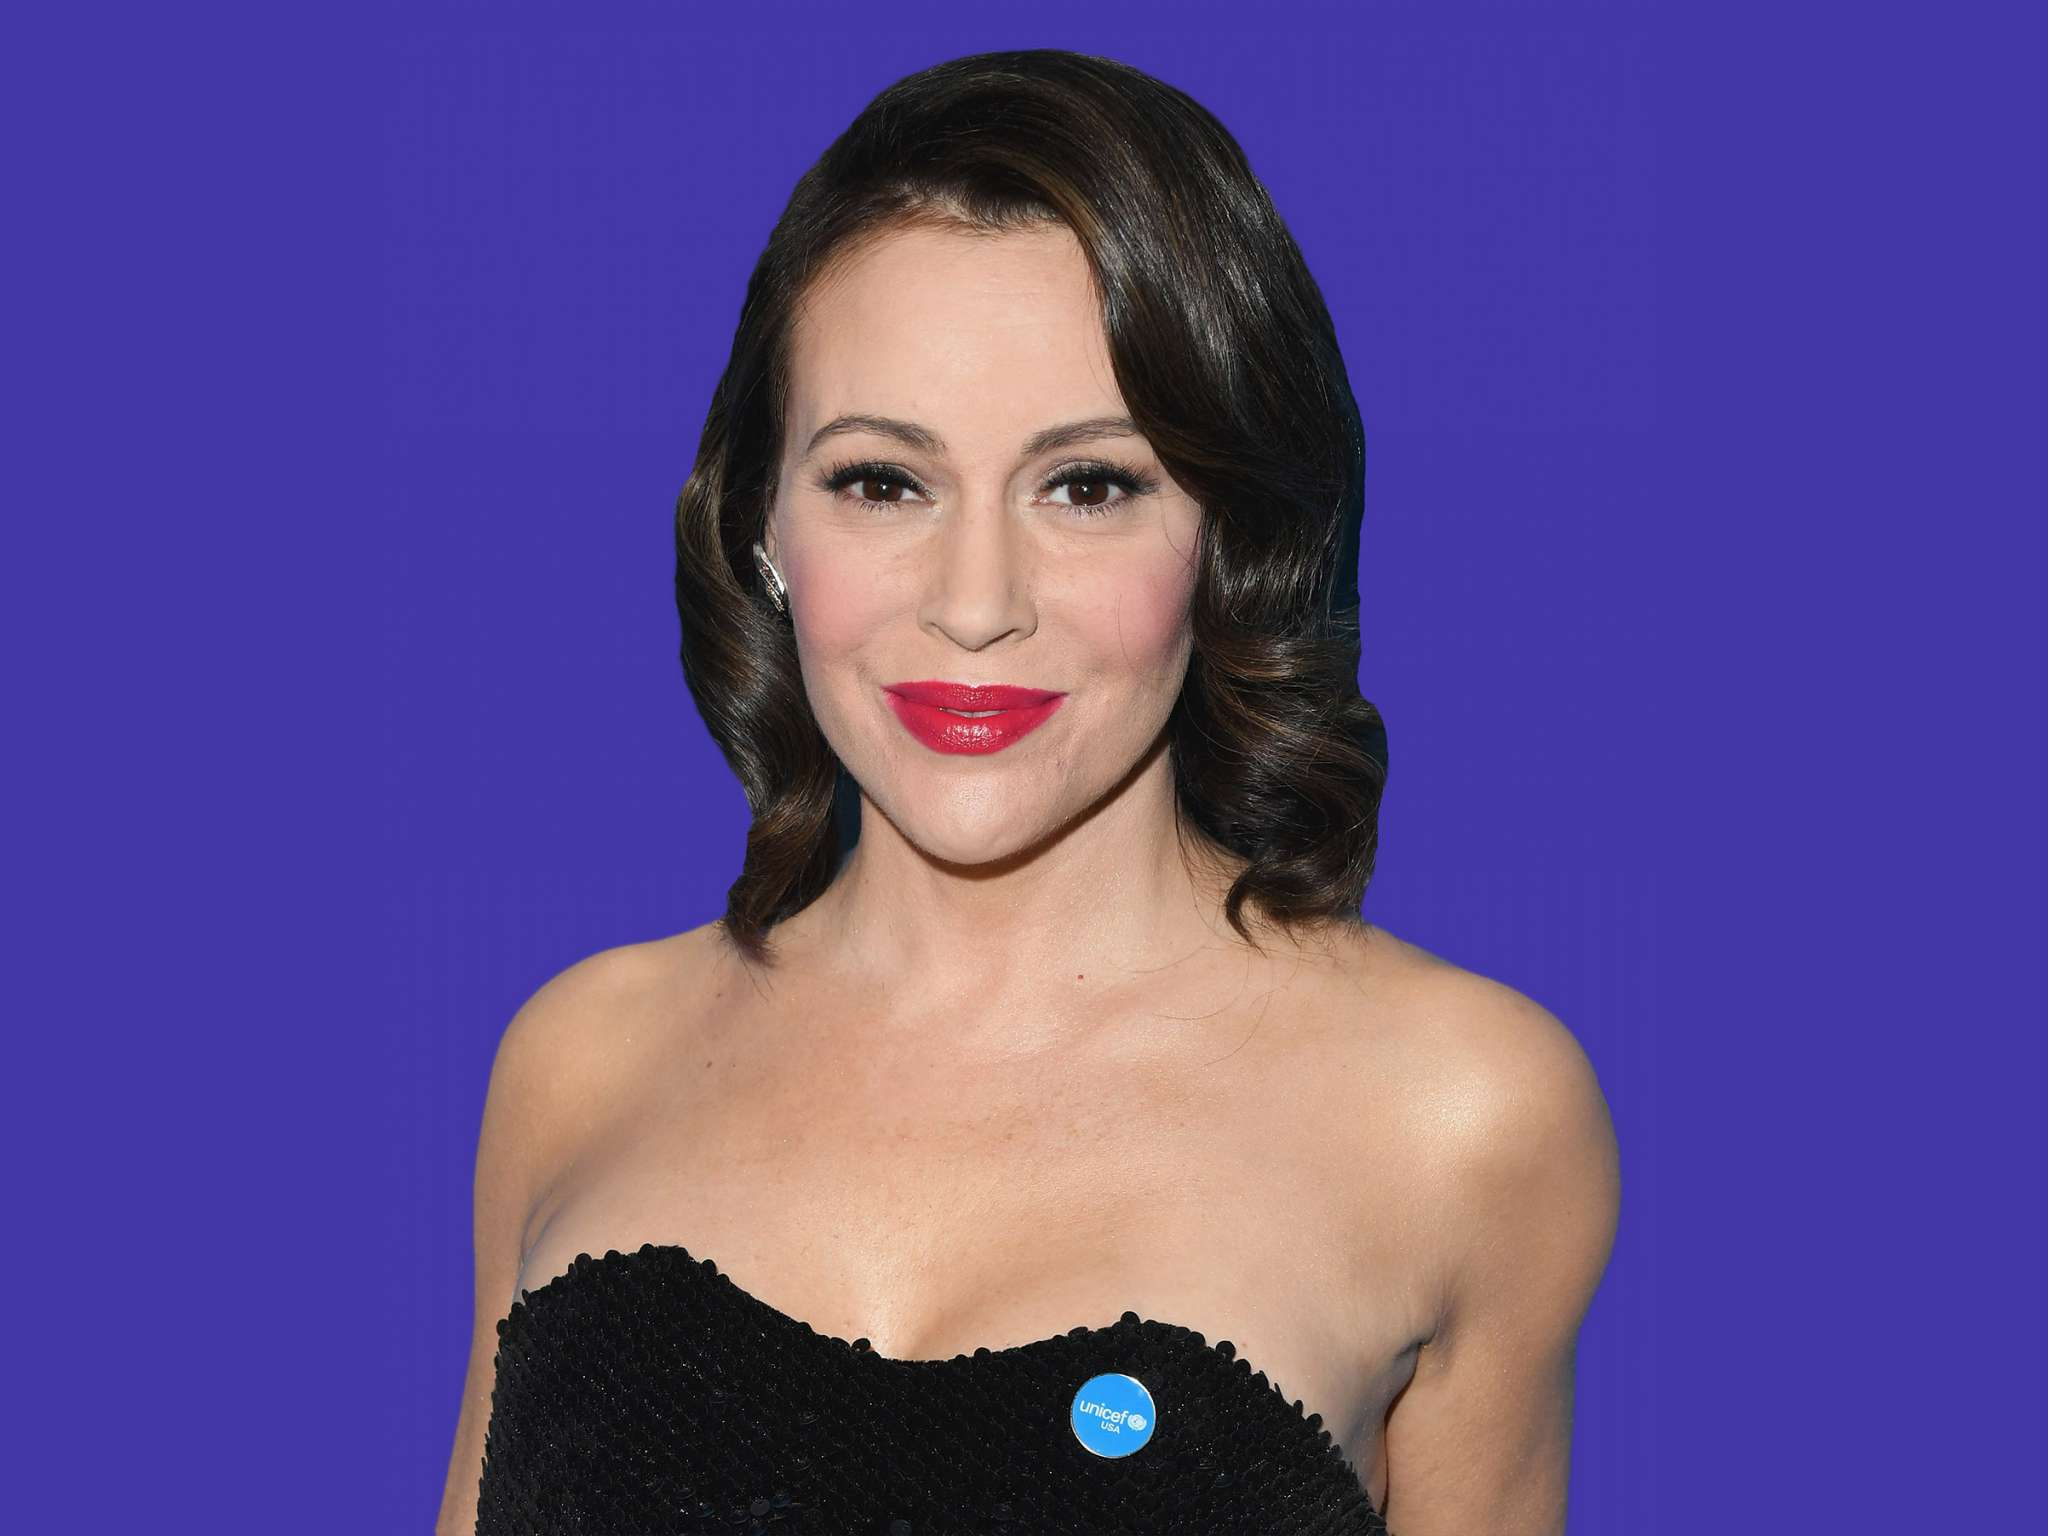 alyssa-milano-claps-back-at-hater-who-called-her-a-washed-up-actress